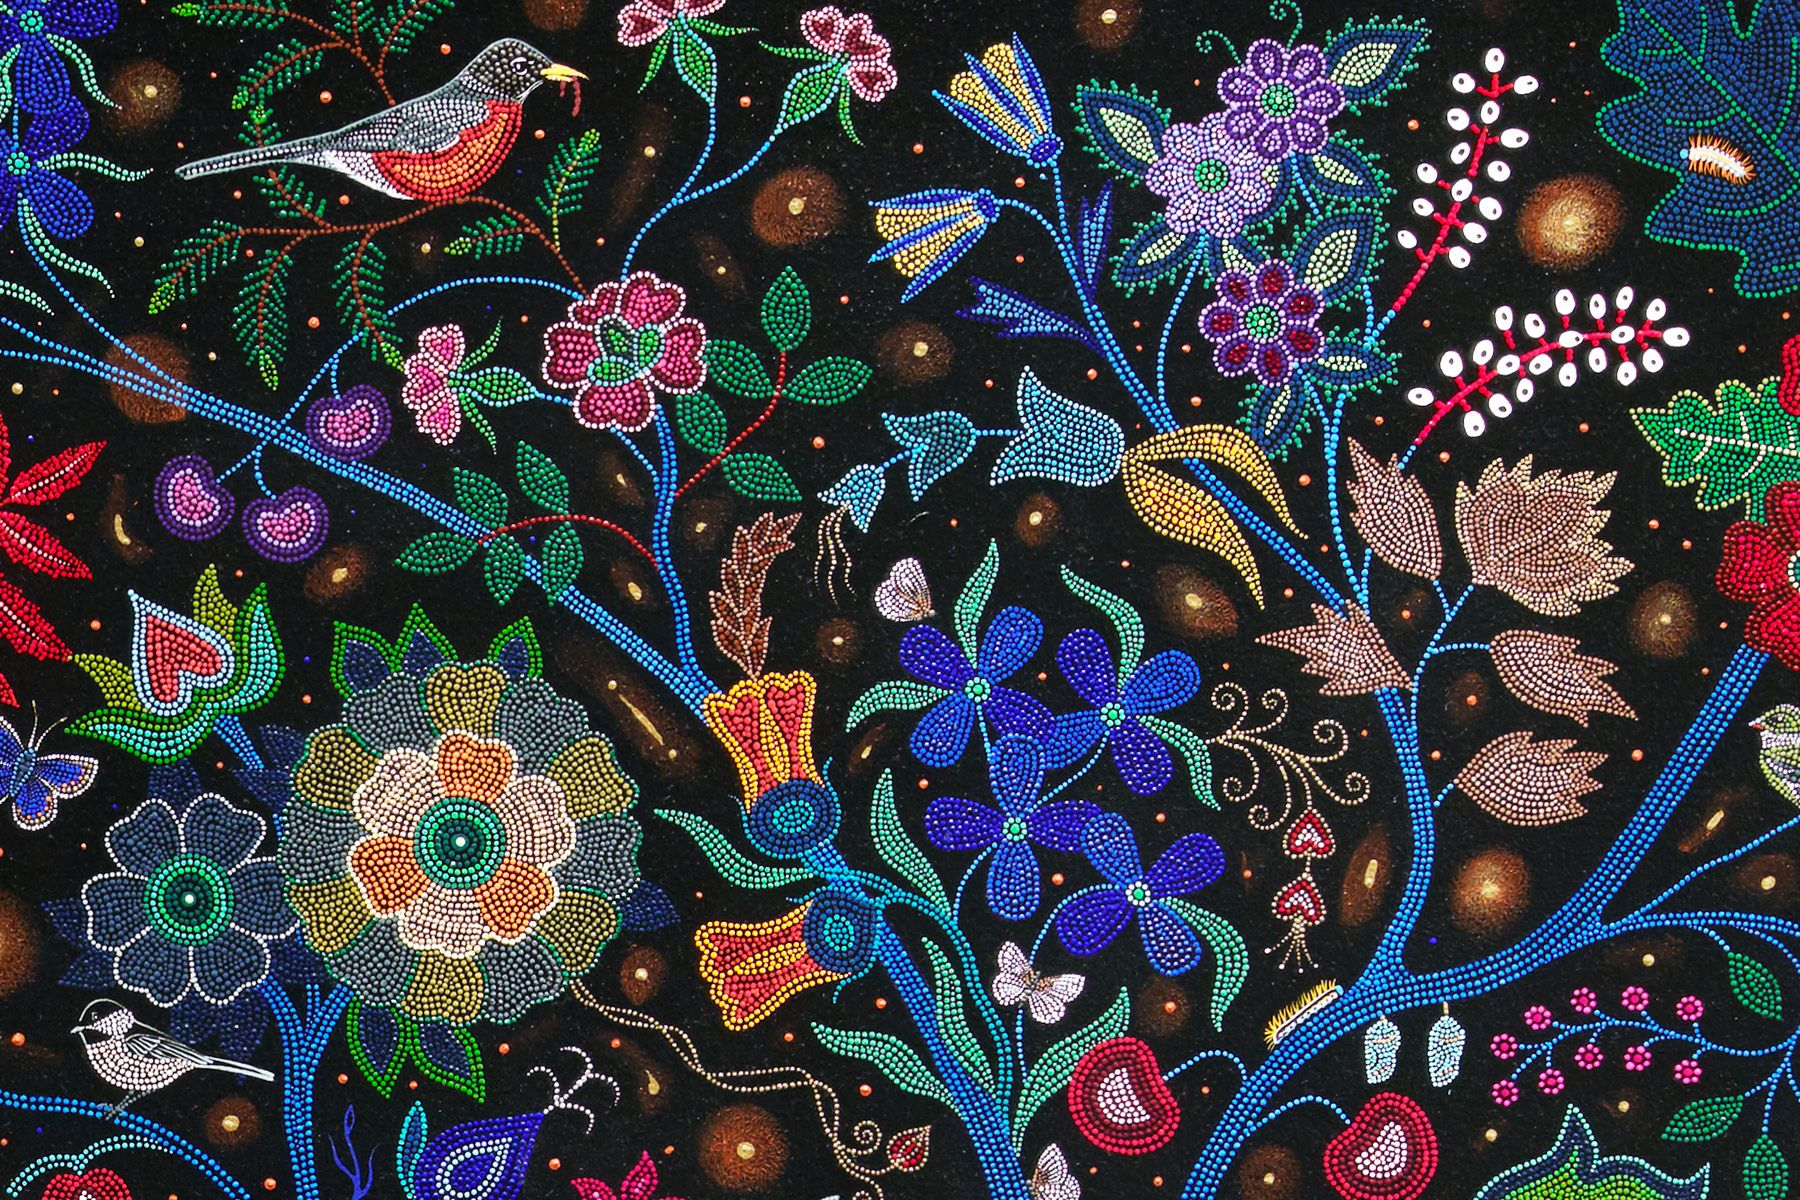 A painting in the style of beadwork, where each dot of paint looks like an individual bead. The painting shows colorful branches, flowers, and a robin sitting in the top left corner.